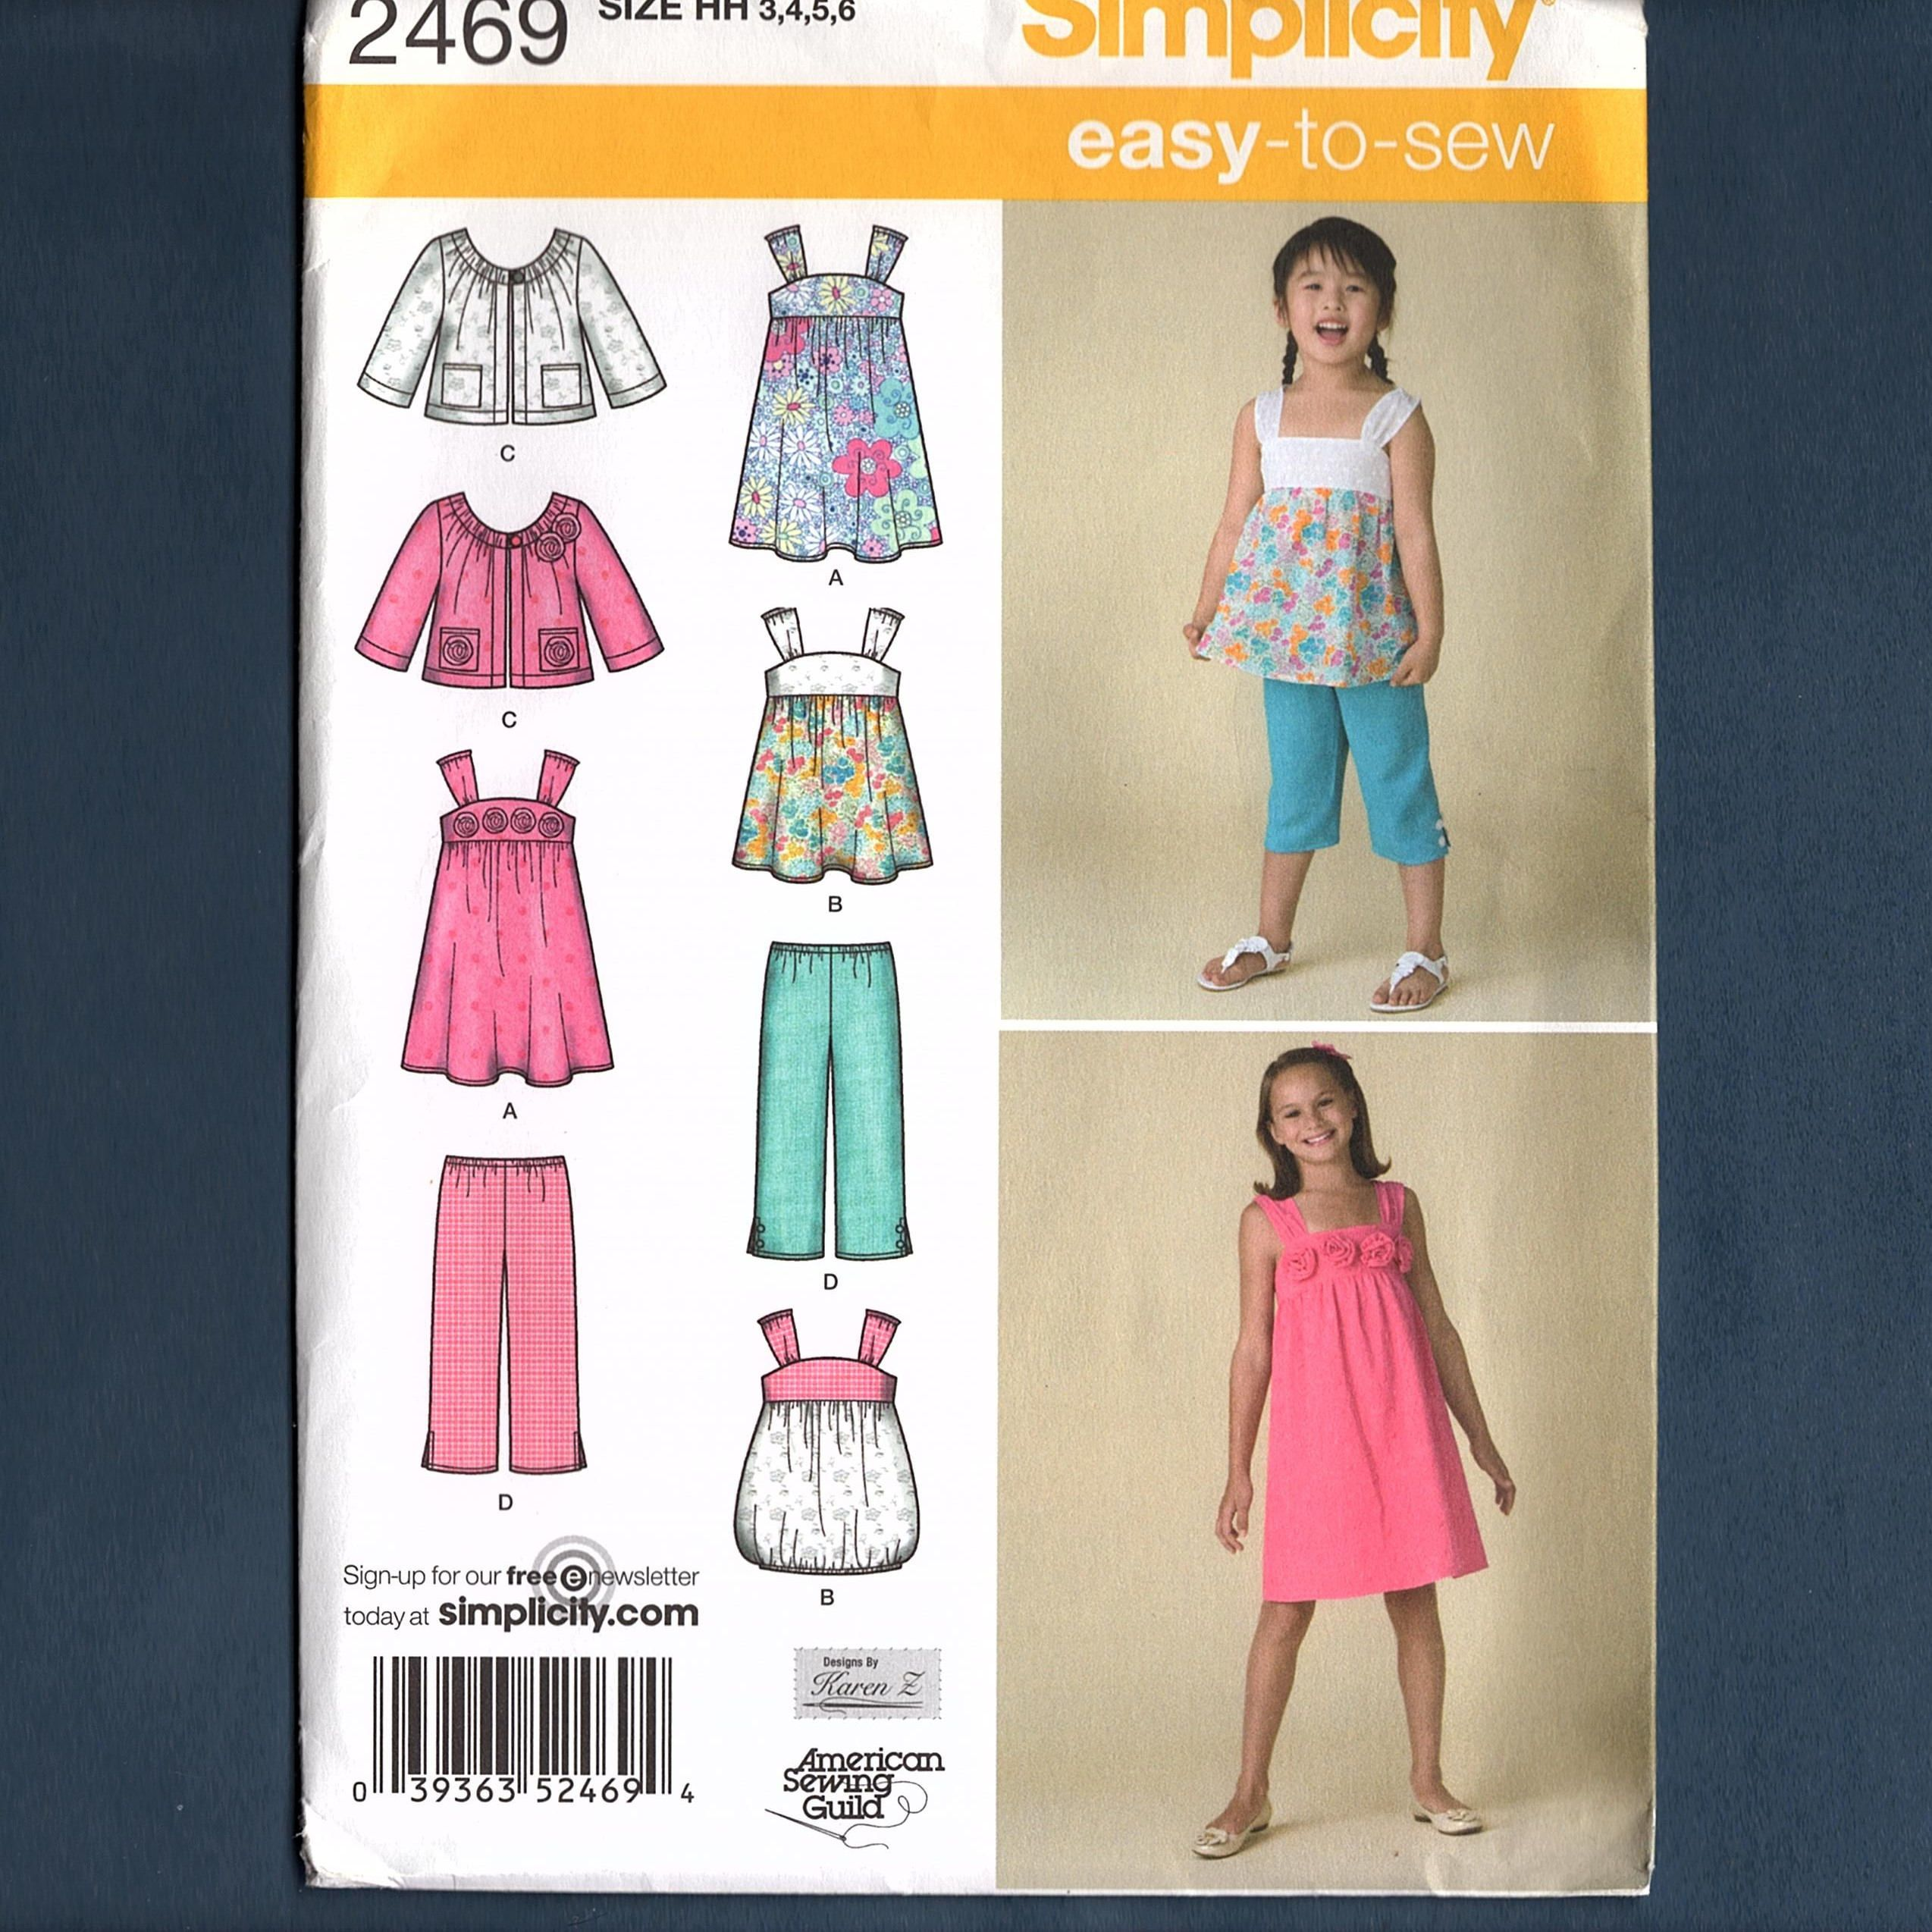 dd03c7bc9e9 Simplicity 2469 Girls Dress and Top